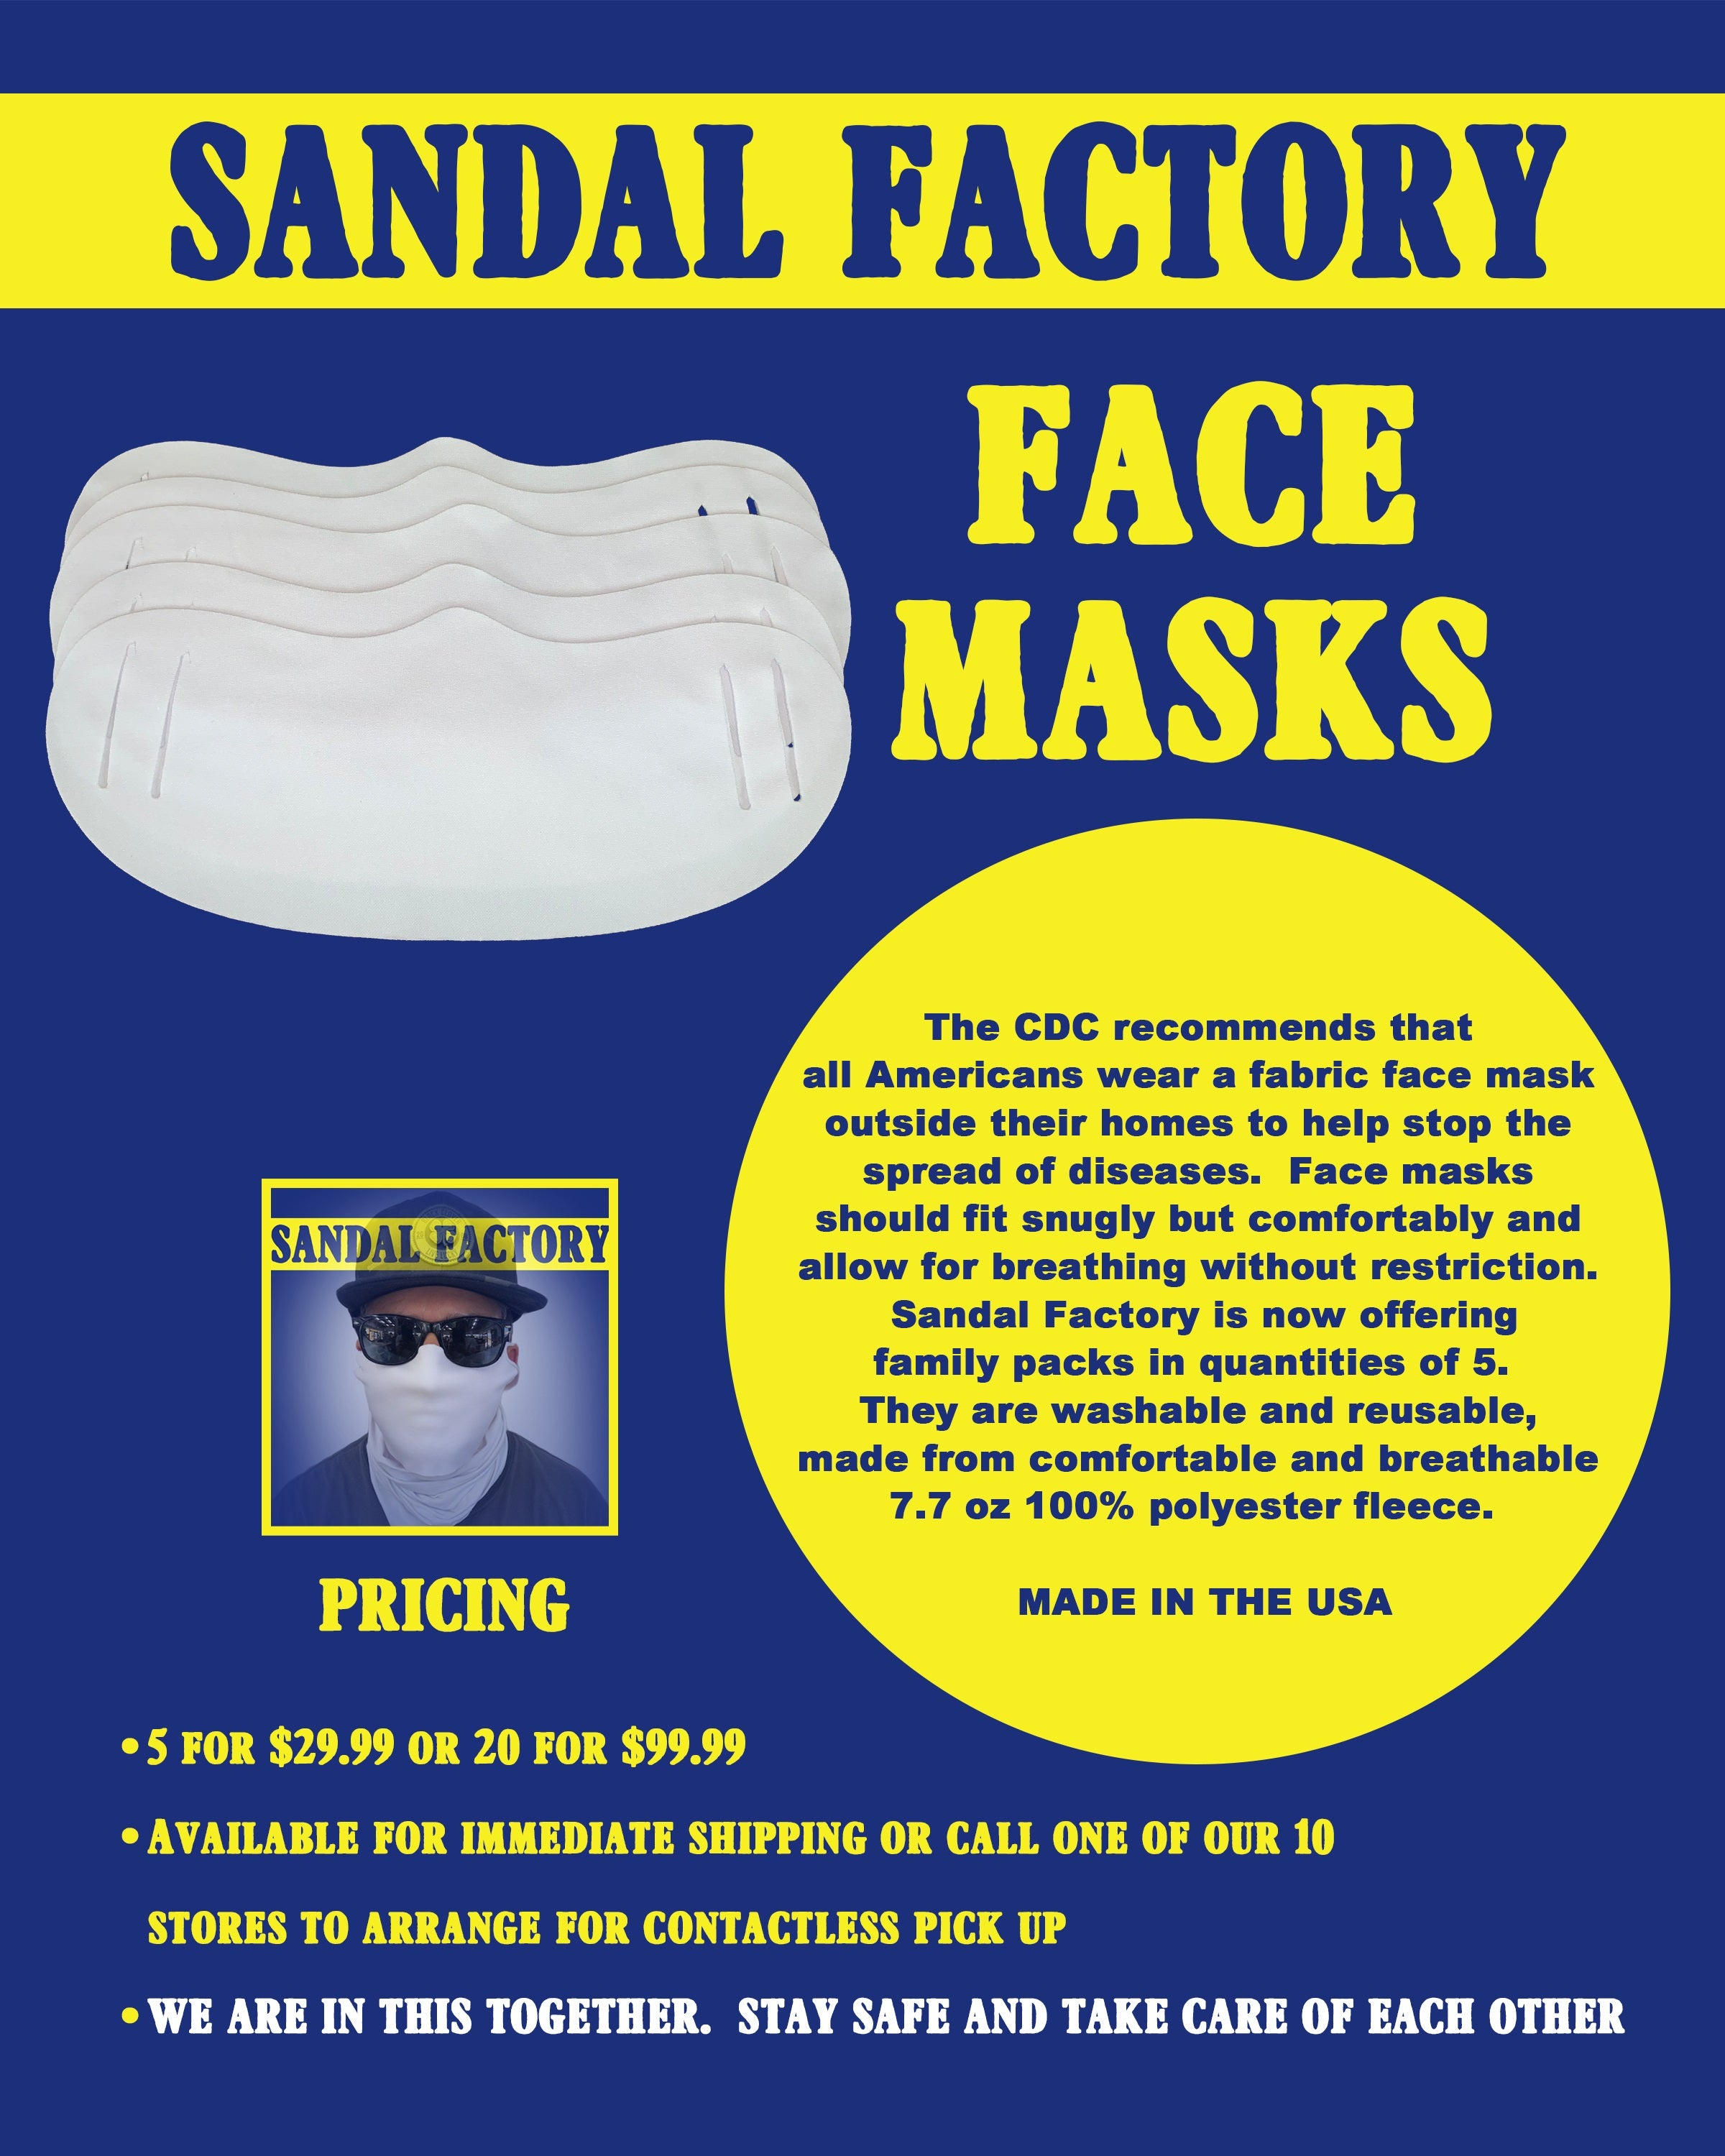 DAILY FACE MASK COVERS- 5 PACK- MADE IN THE USA